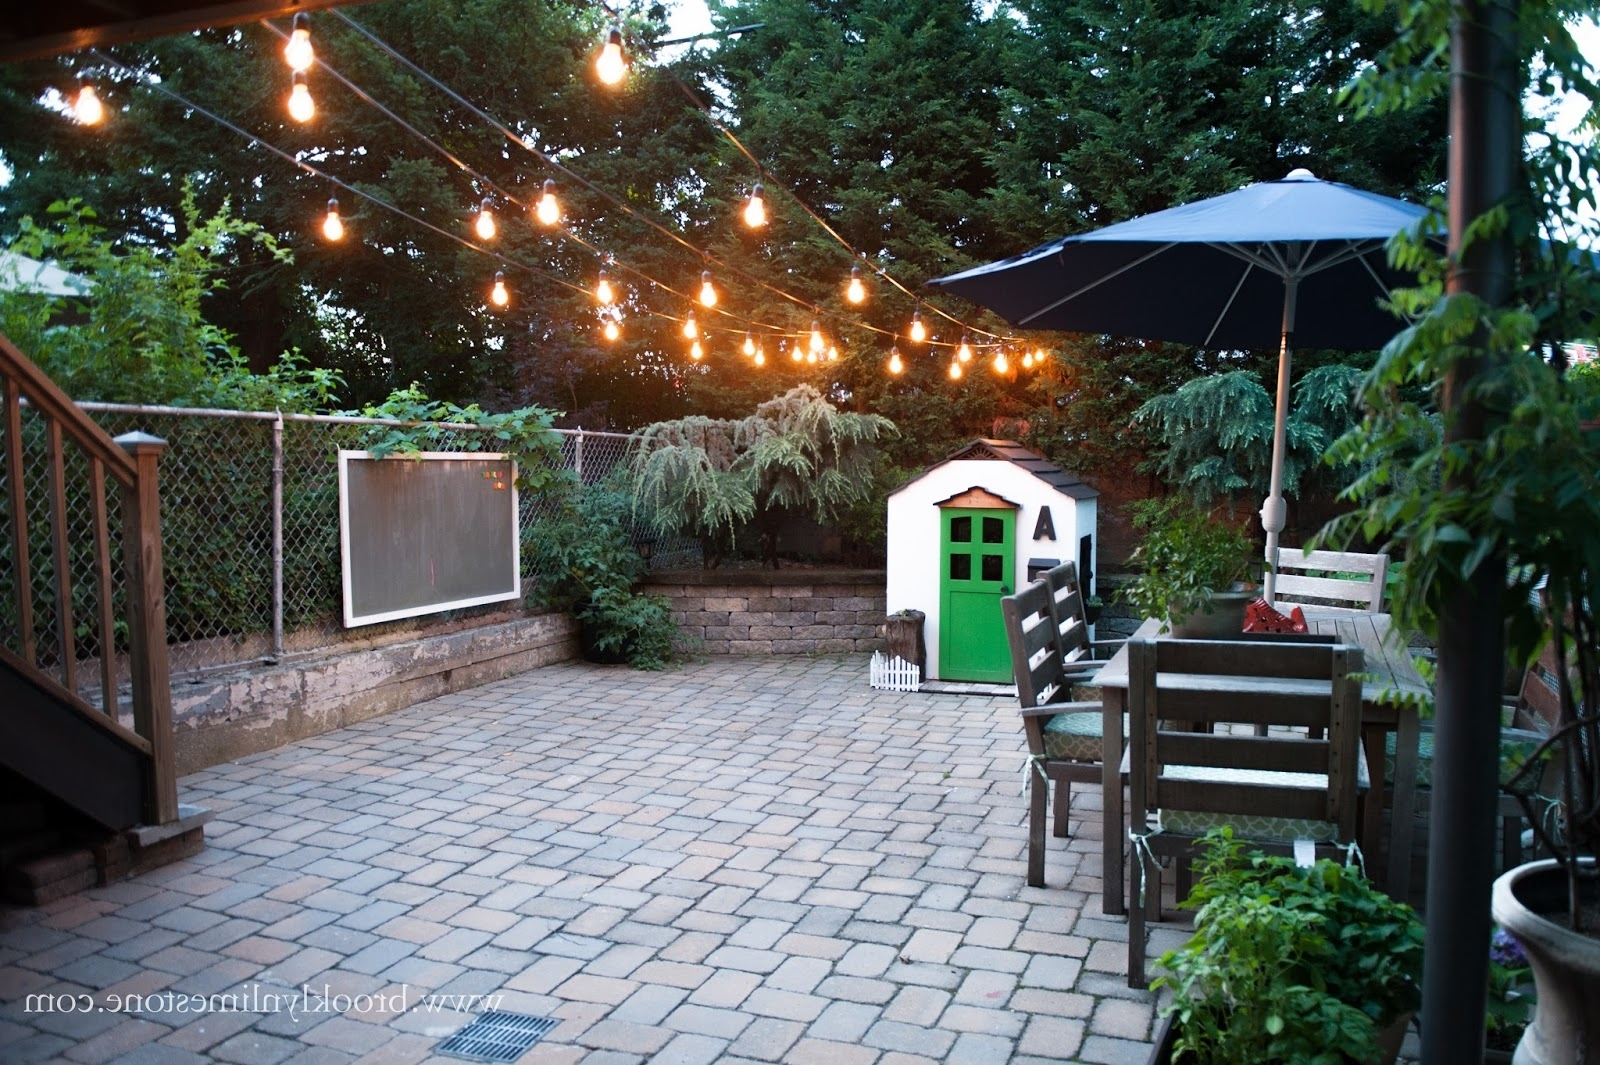 Brooklyn Limestone Regarding Most Recently Released Garden And Outdoor String Lights (View 20 of 20)